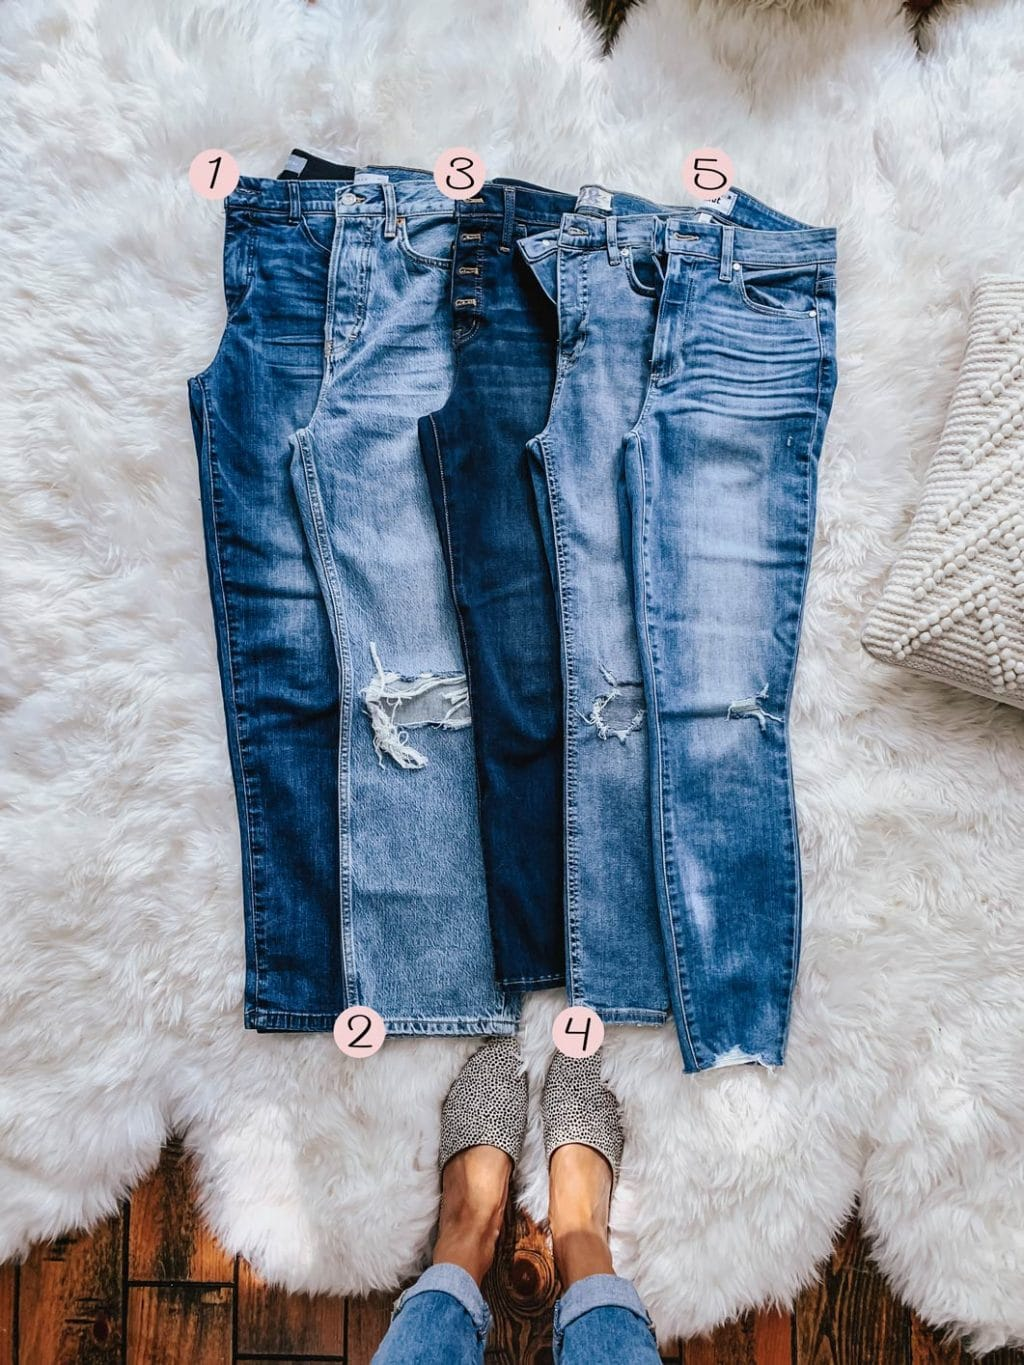 top 5 jeans